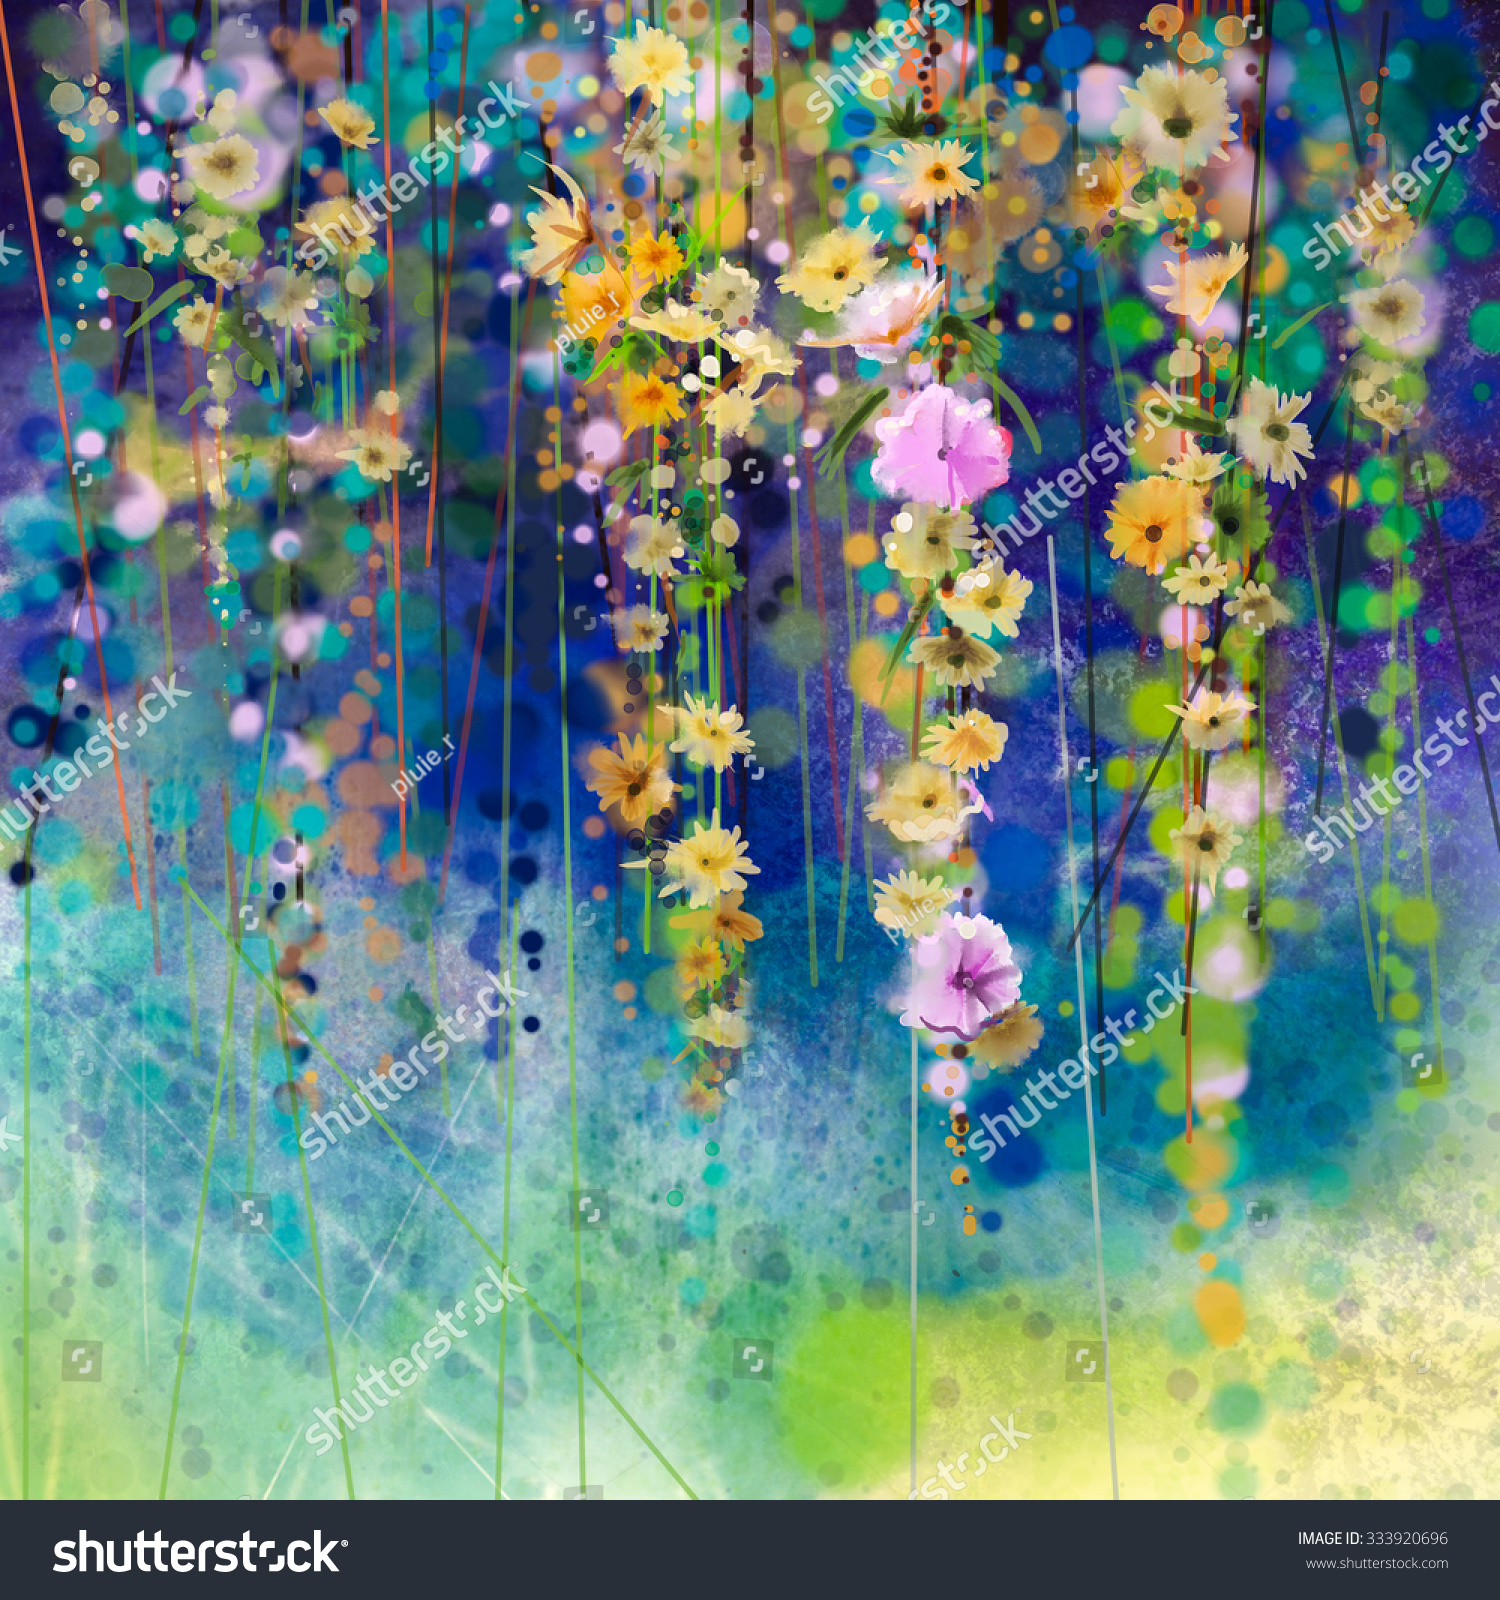 Abstract Floral Watercolor Painting Hand Painted Stock